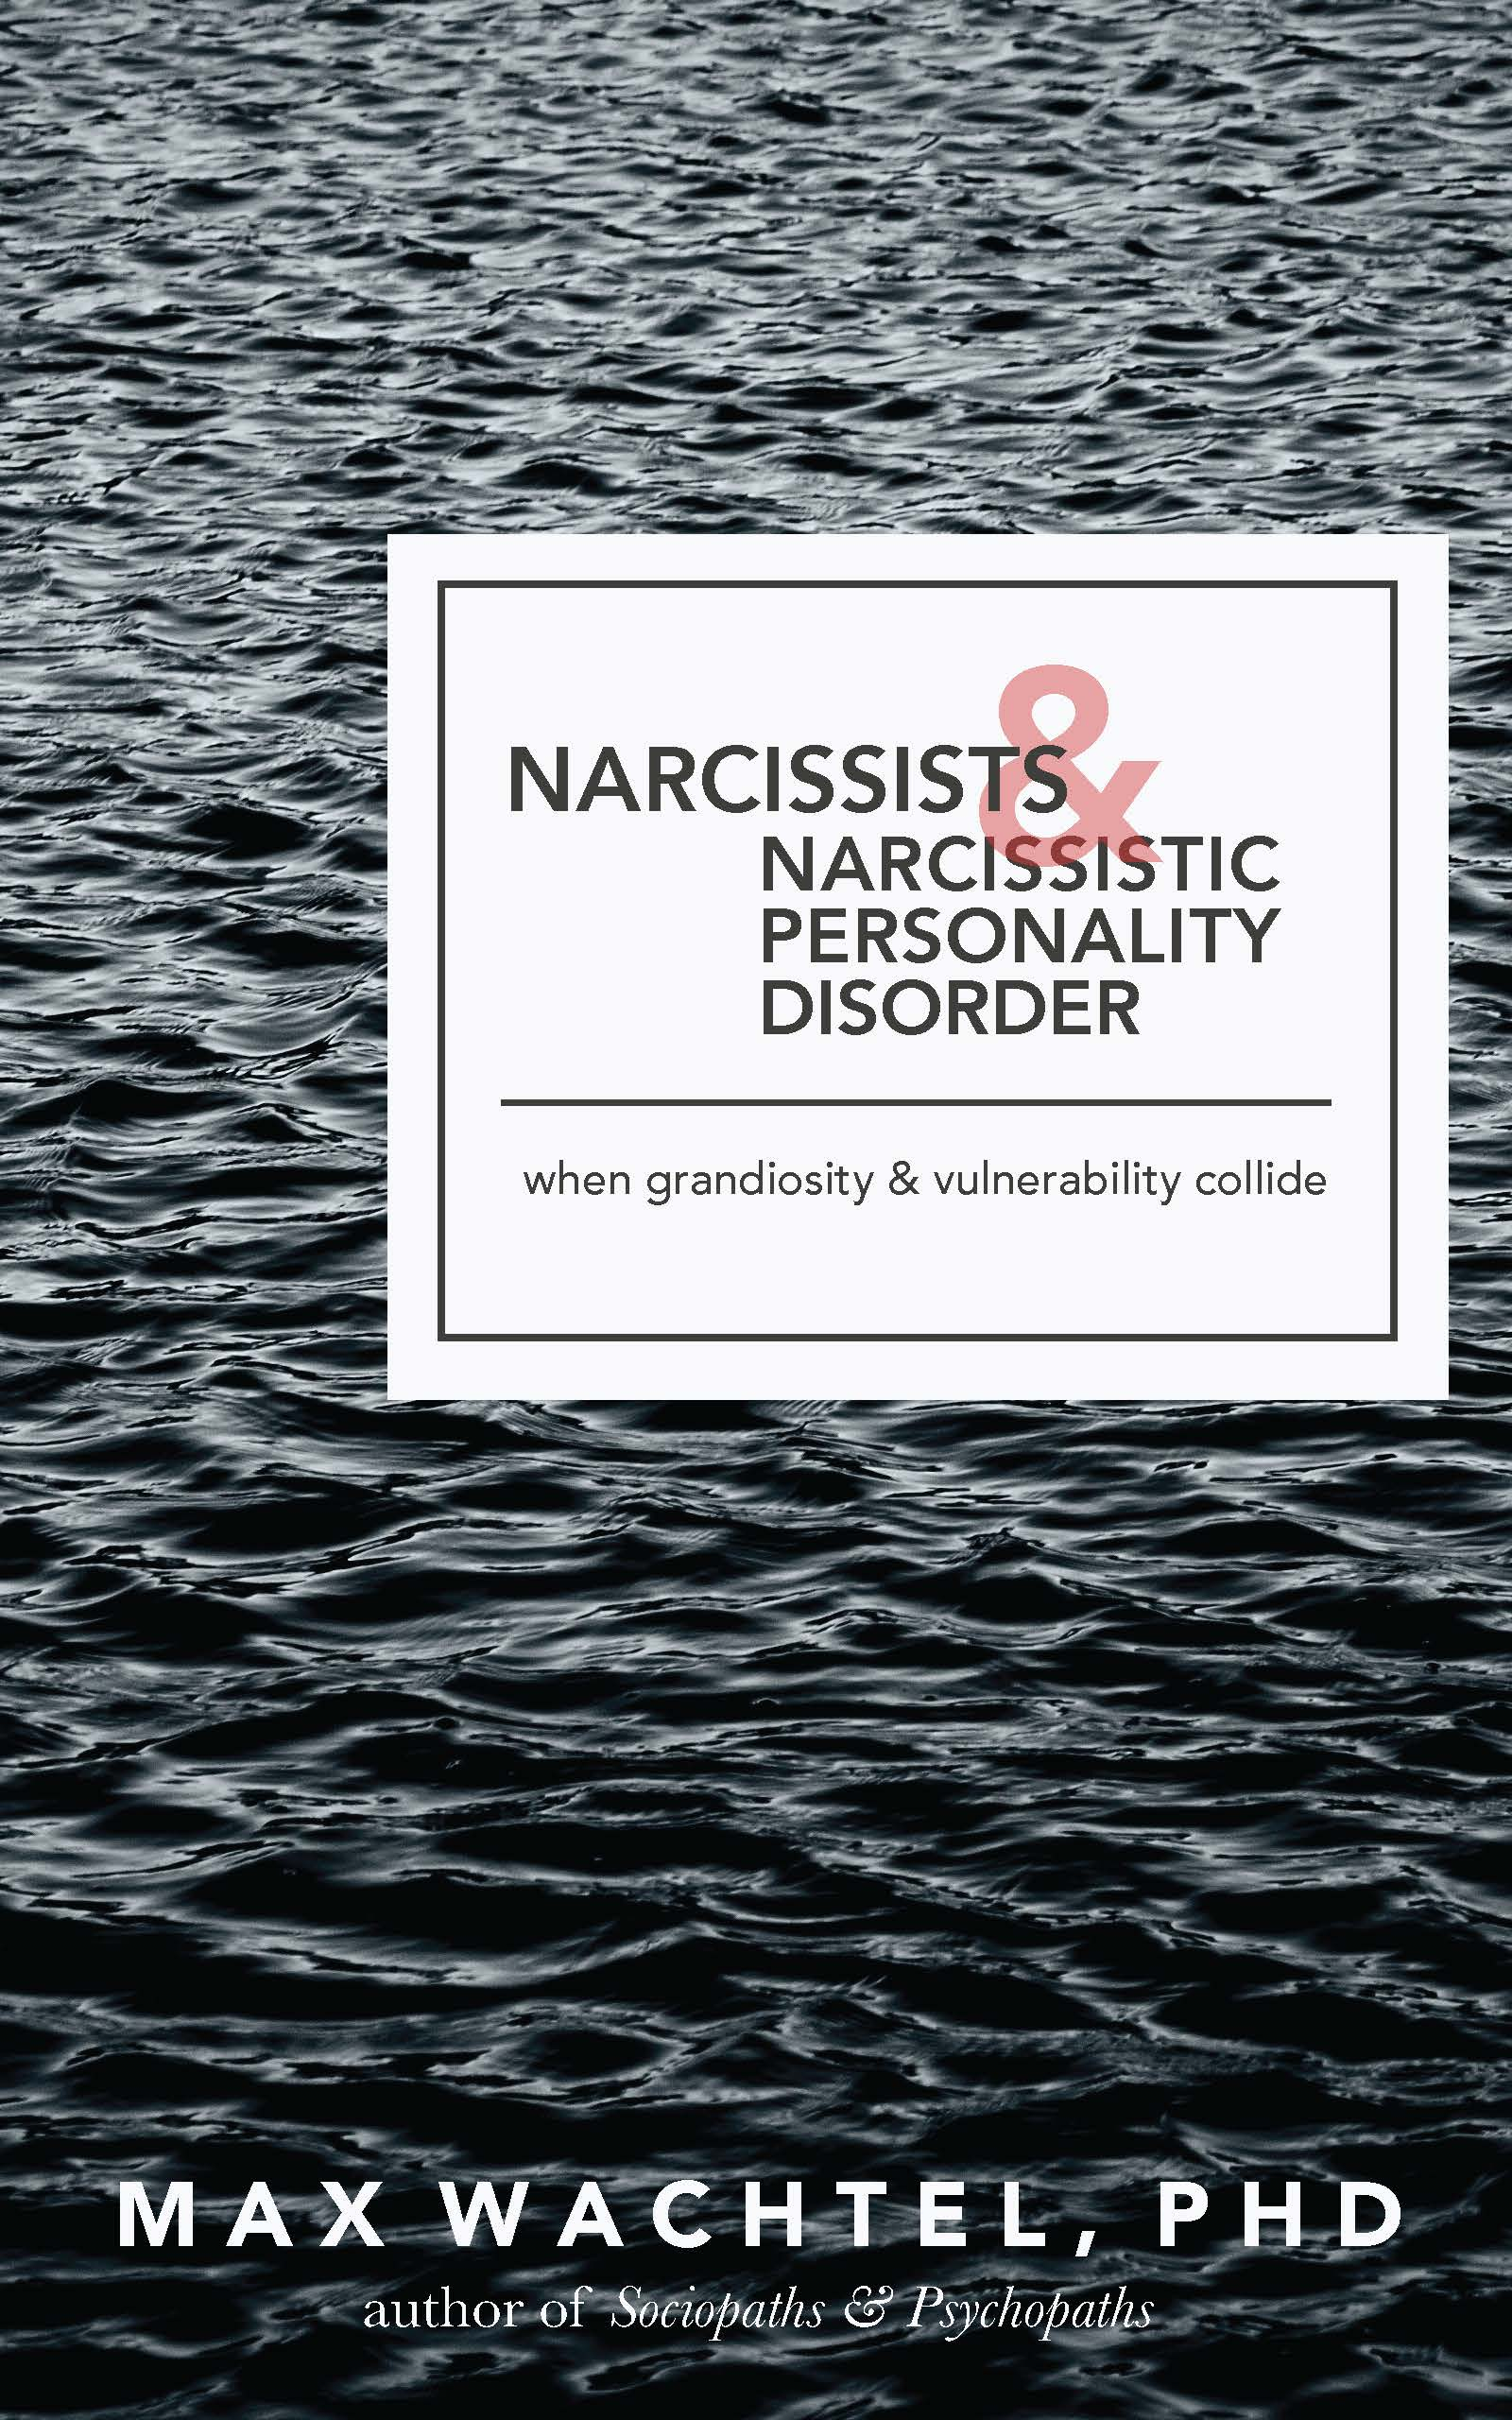 Narcissists and Narcissistic Personality Disorder Book Cover HIGH QUALITY 040618.jpg